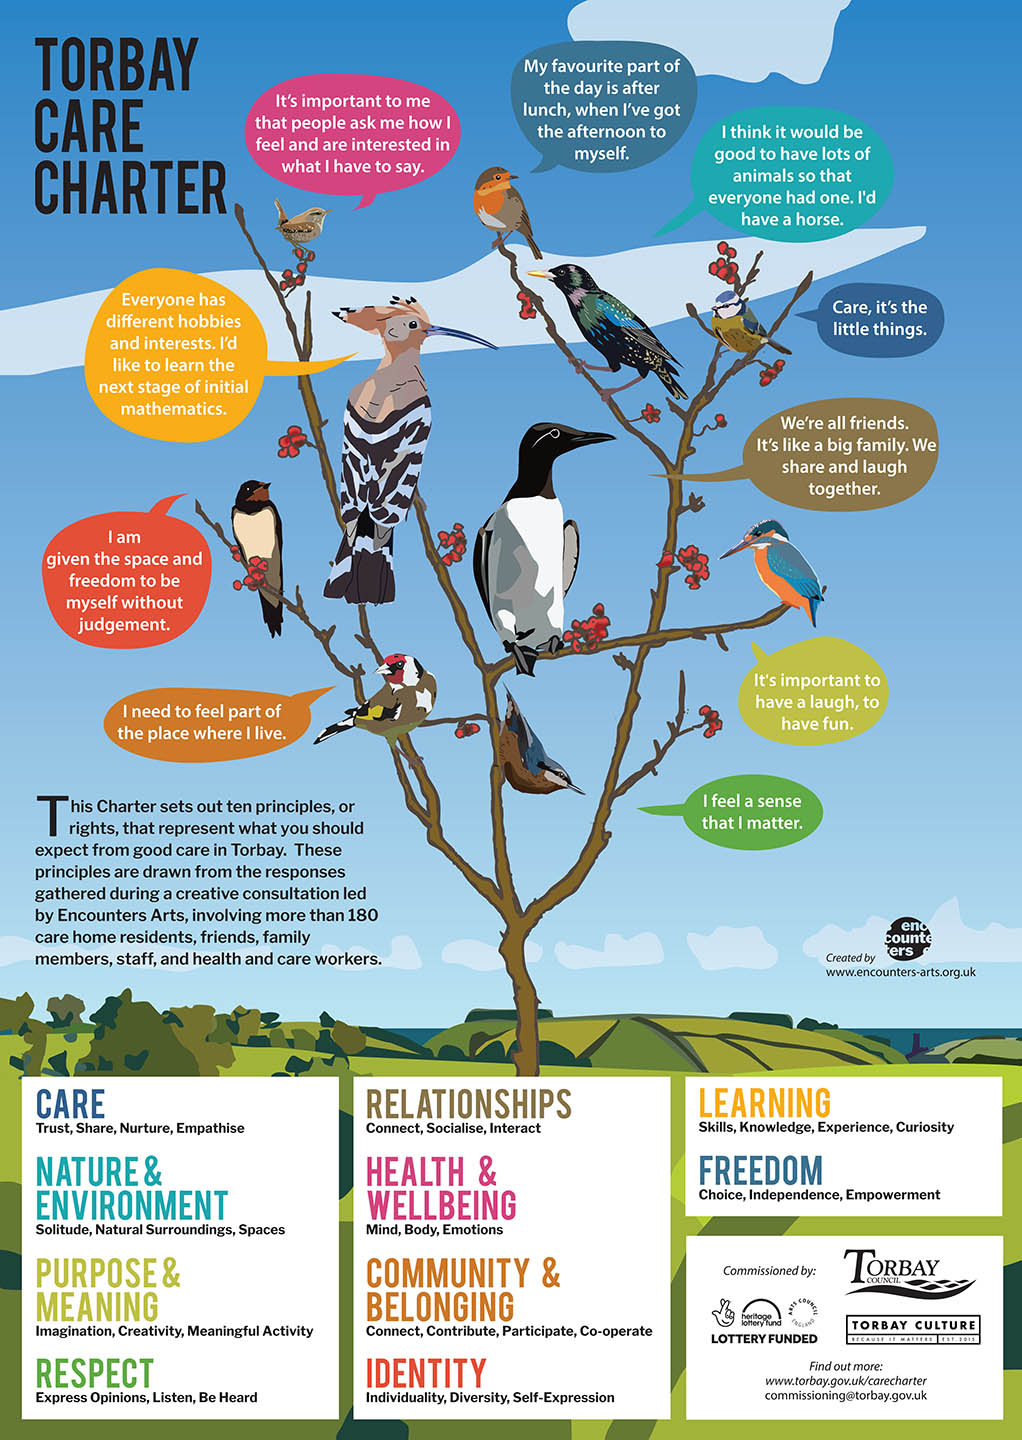 Torbay Care Charter poster